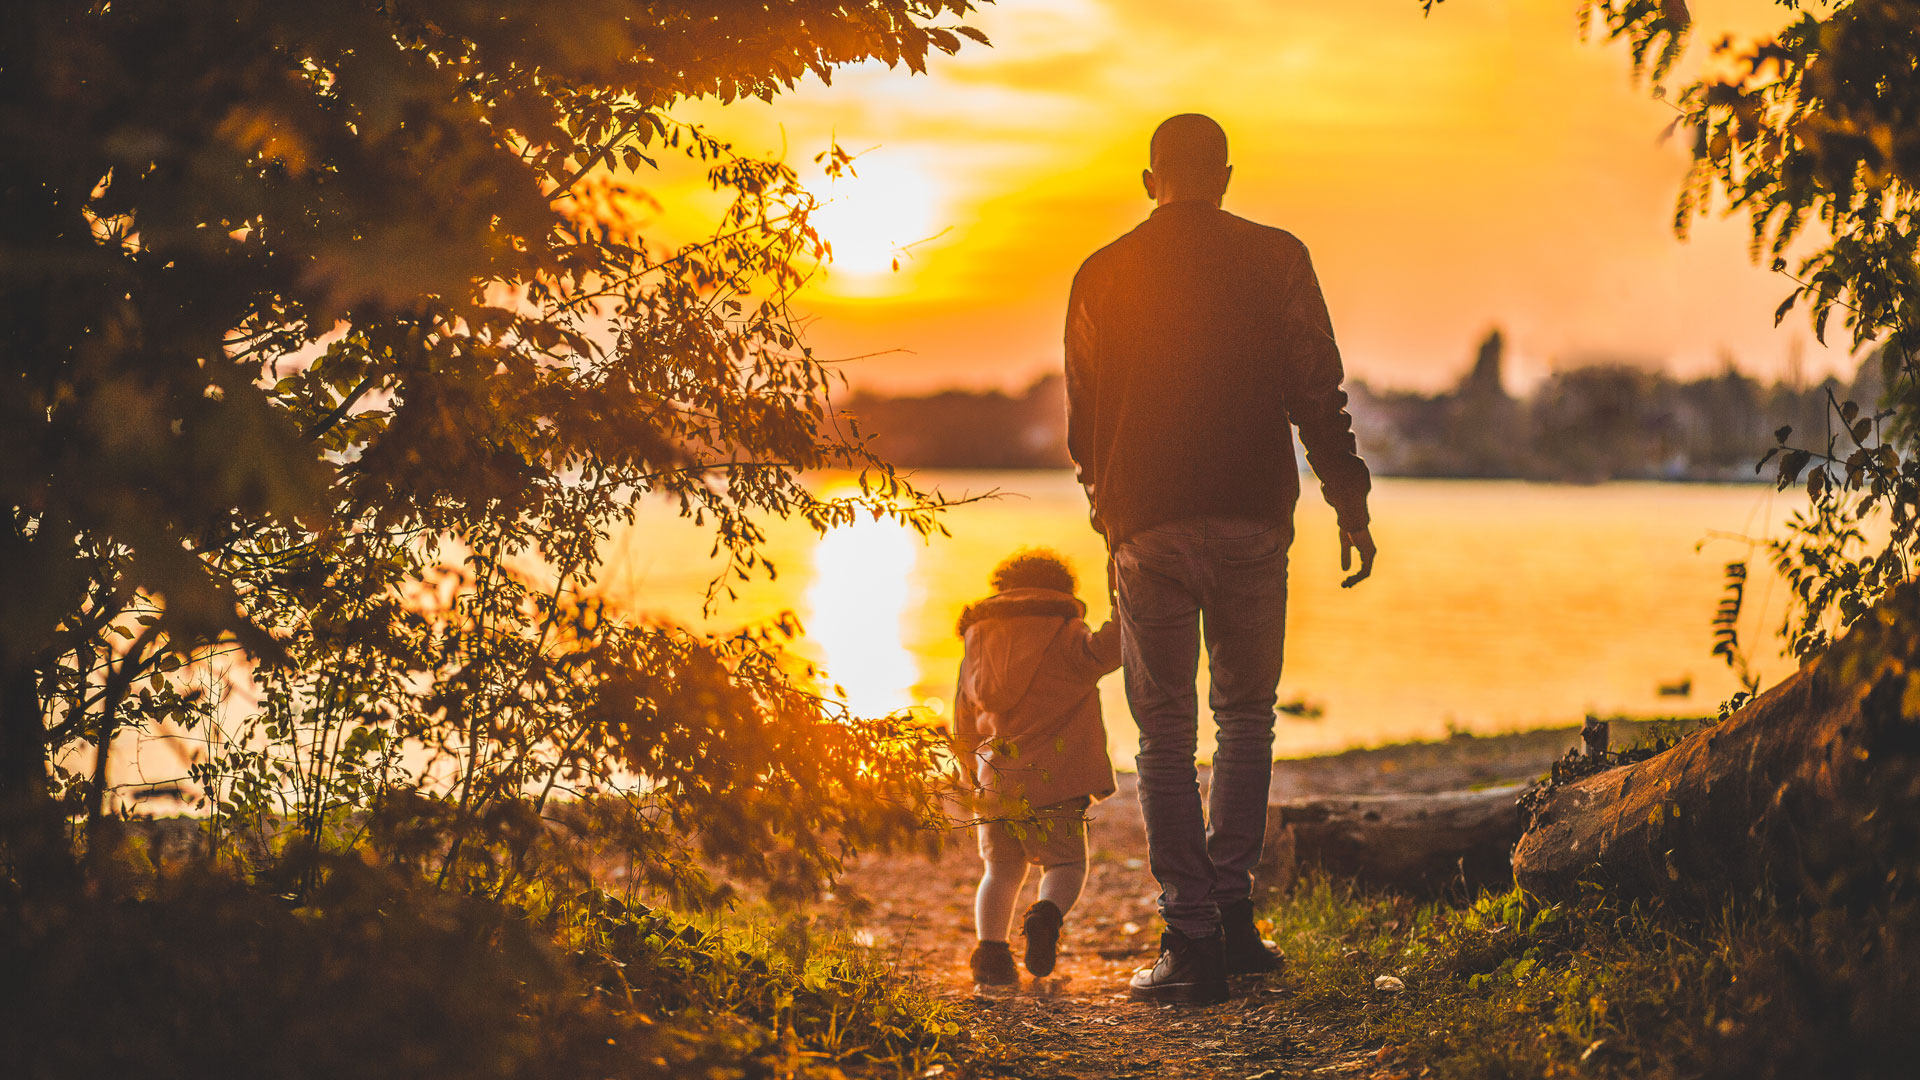 A child with dad walking